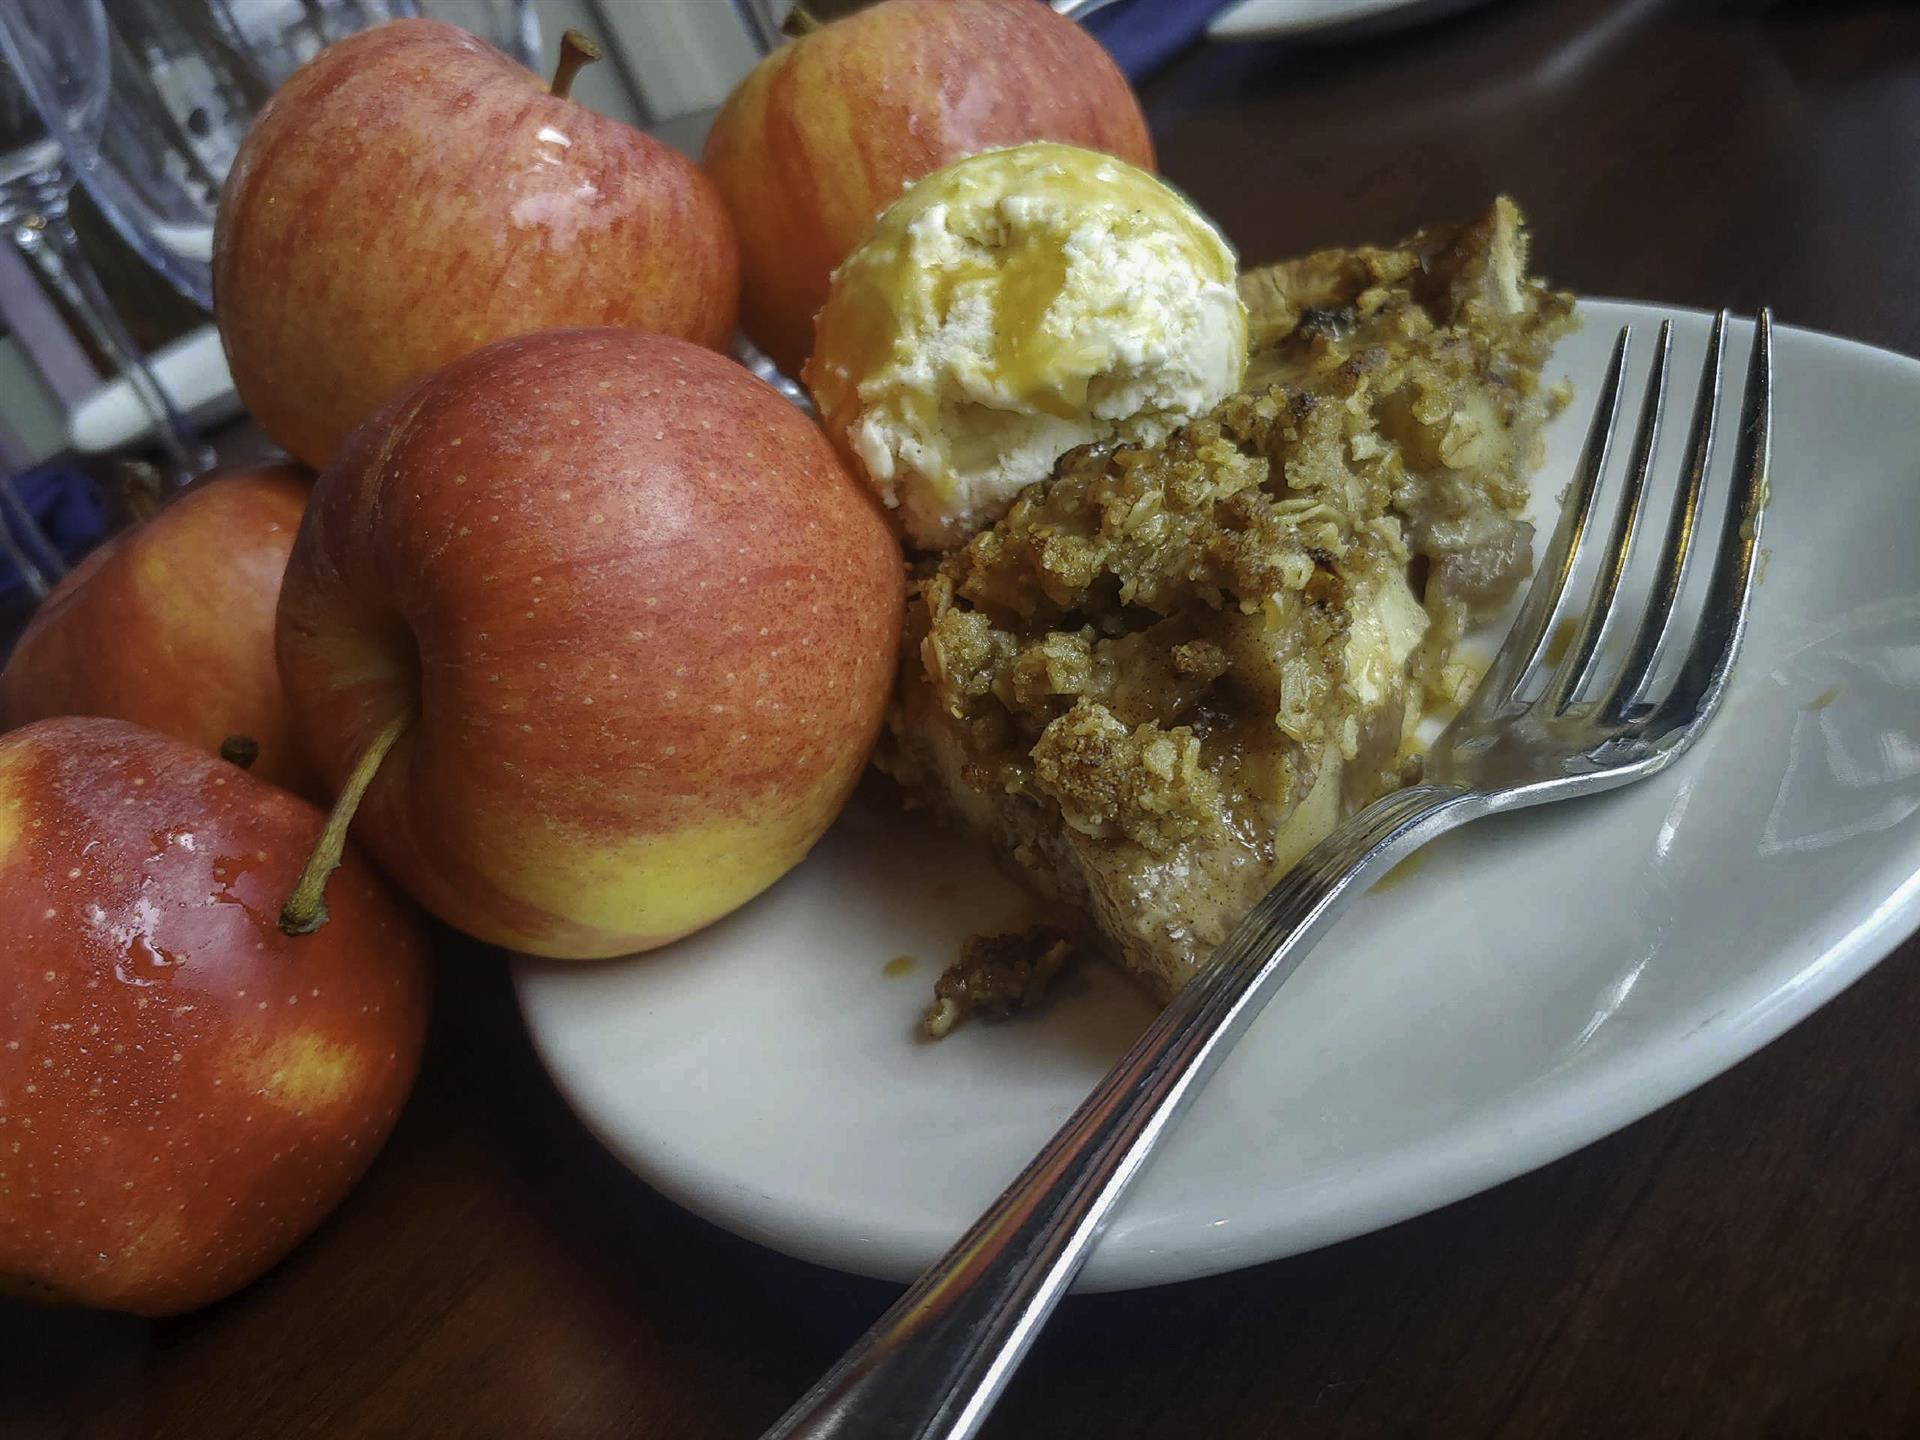 apples and pie with ice cream on top